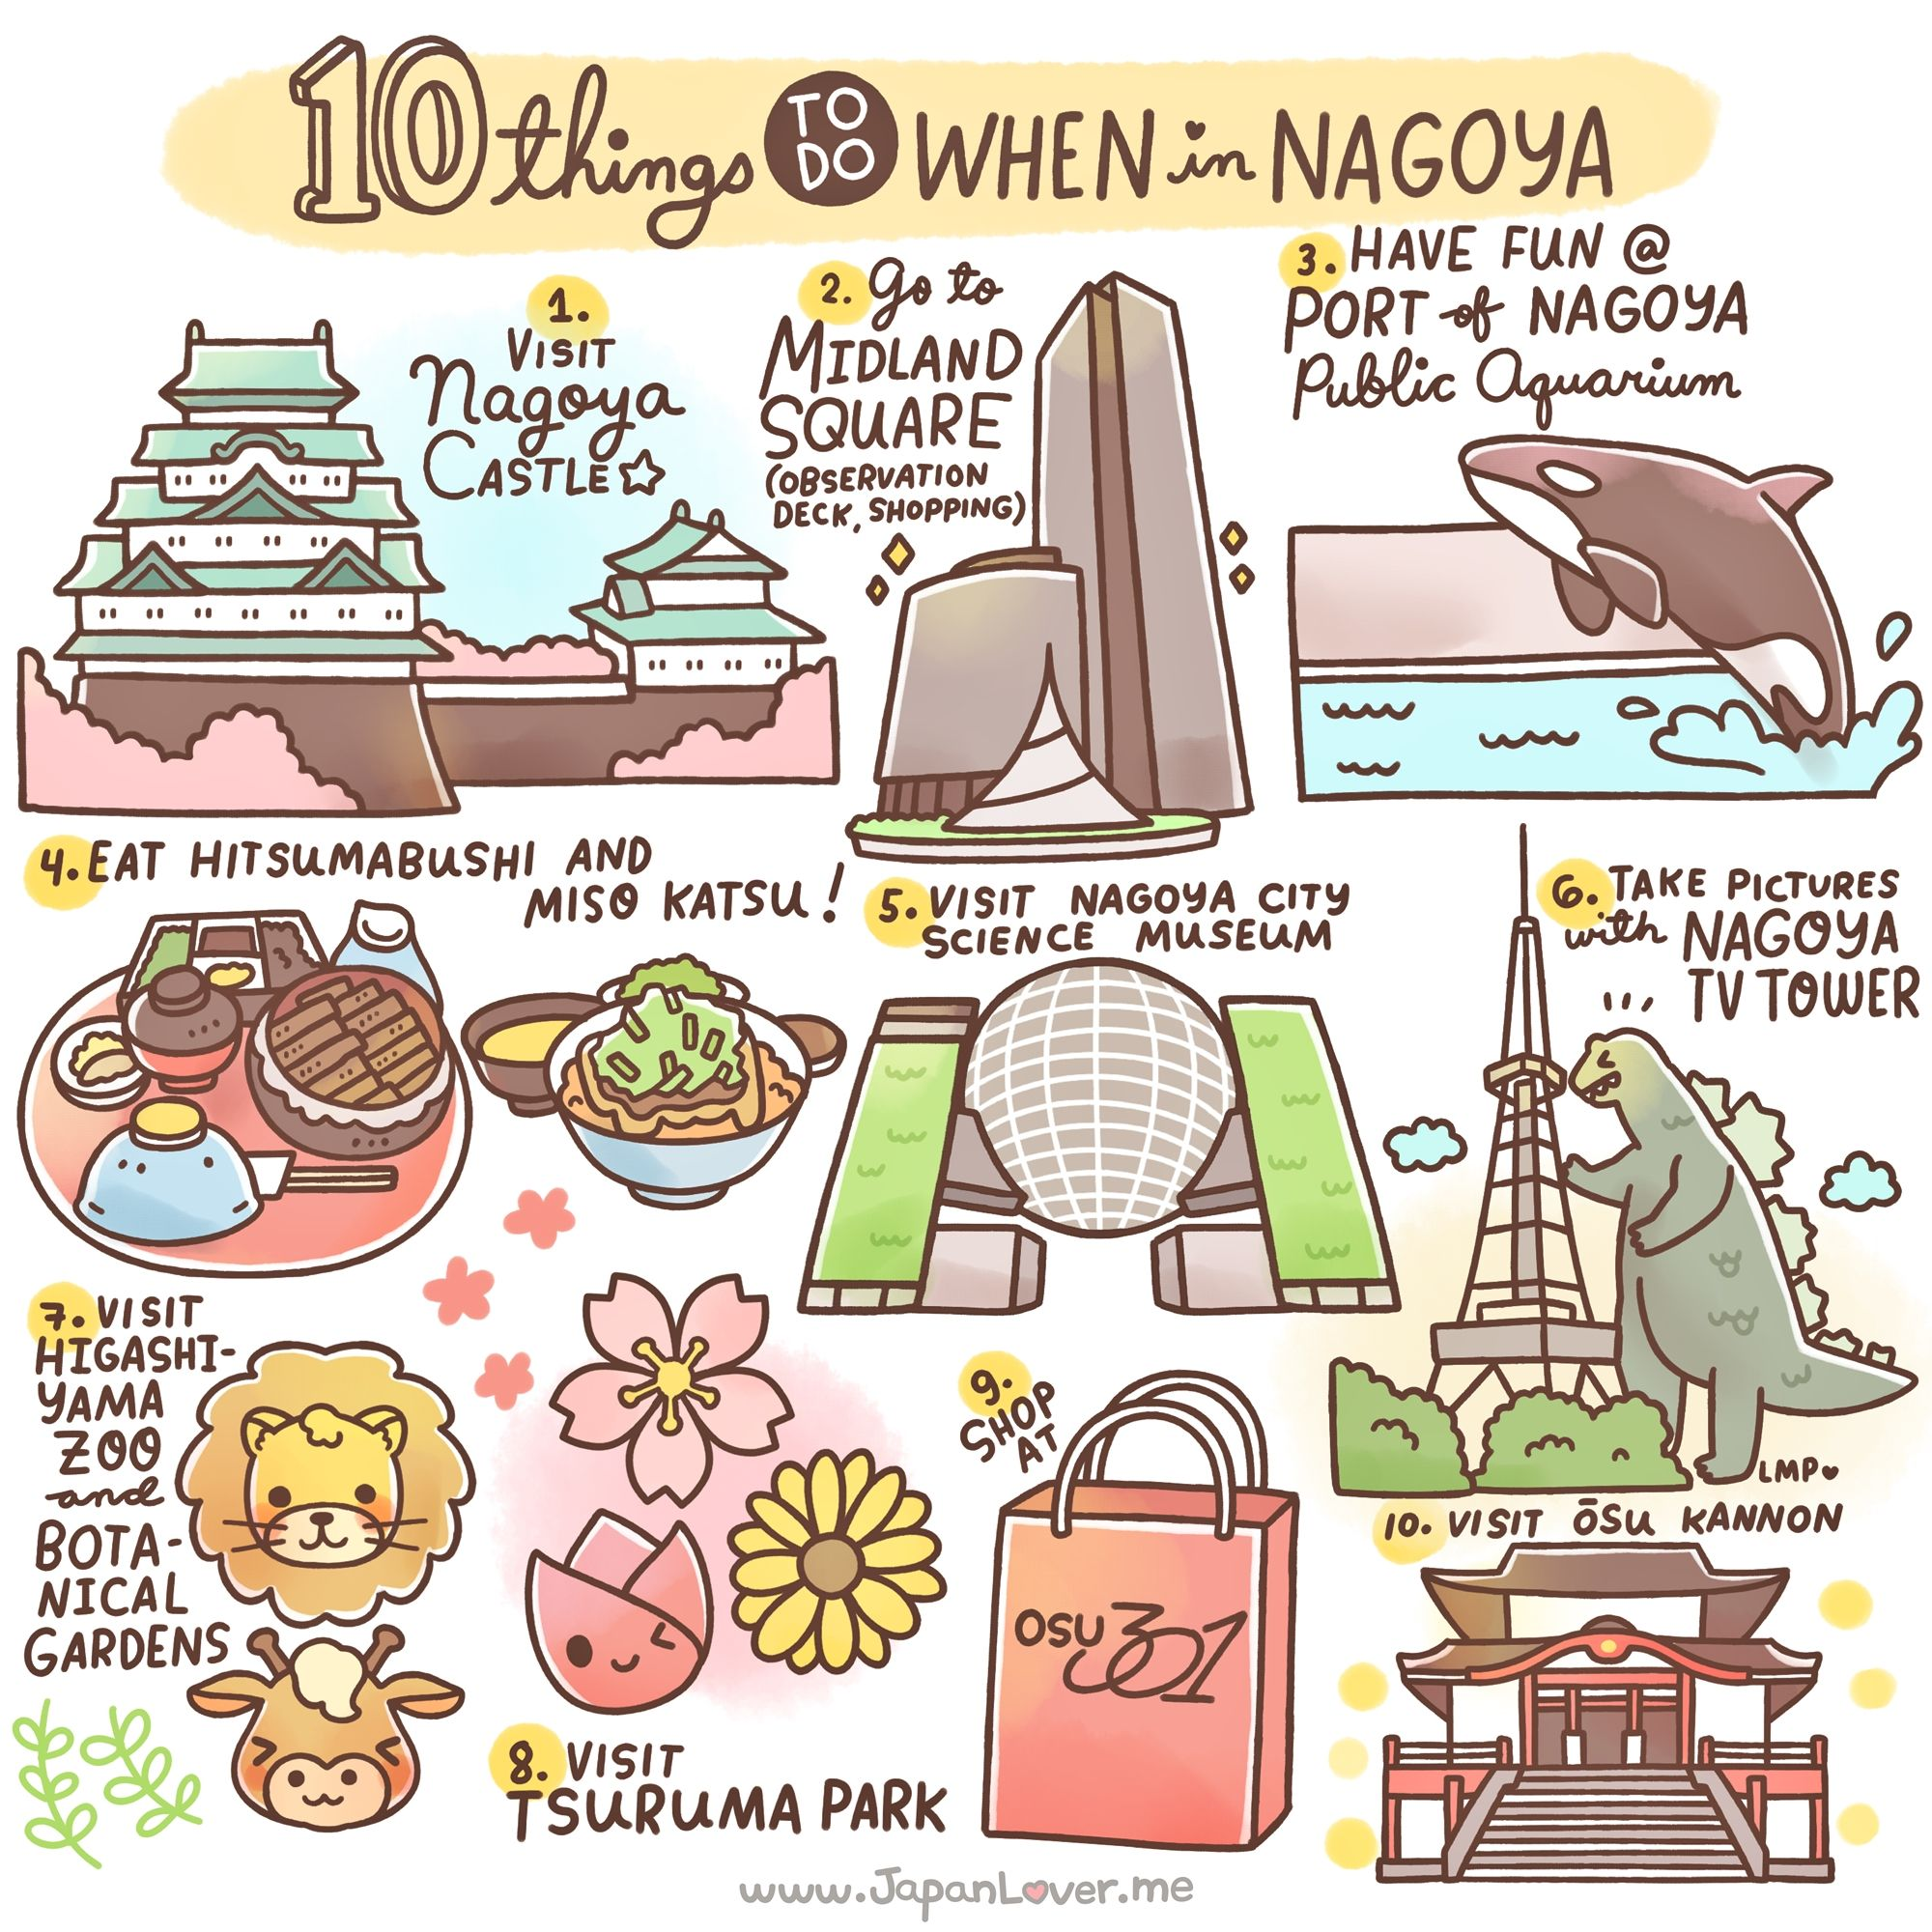 Our destination for today is... Nagoya! (*^▽^)/  Nagoya is one of the largest cities in Japan. It's port is also one of the biggest and busiest ports in the country!  These are some of the things you can do in Nagoya. Sharing the Worldwide JapanLove ♥ www.japanlover.me ♥ www.instagram.com/JapanLoverMe Art by Little Miss Paintbrush